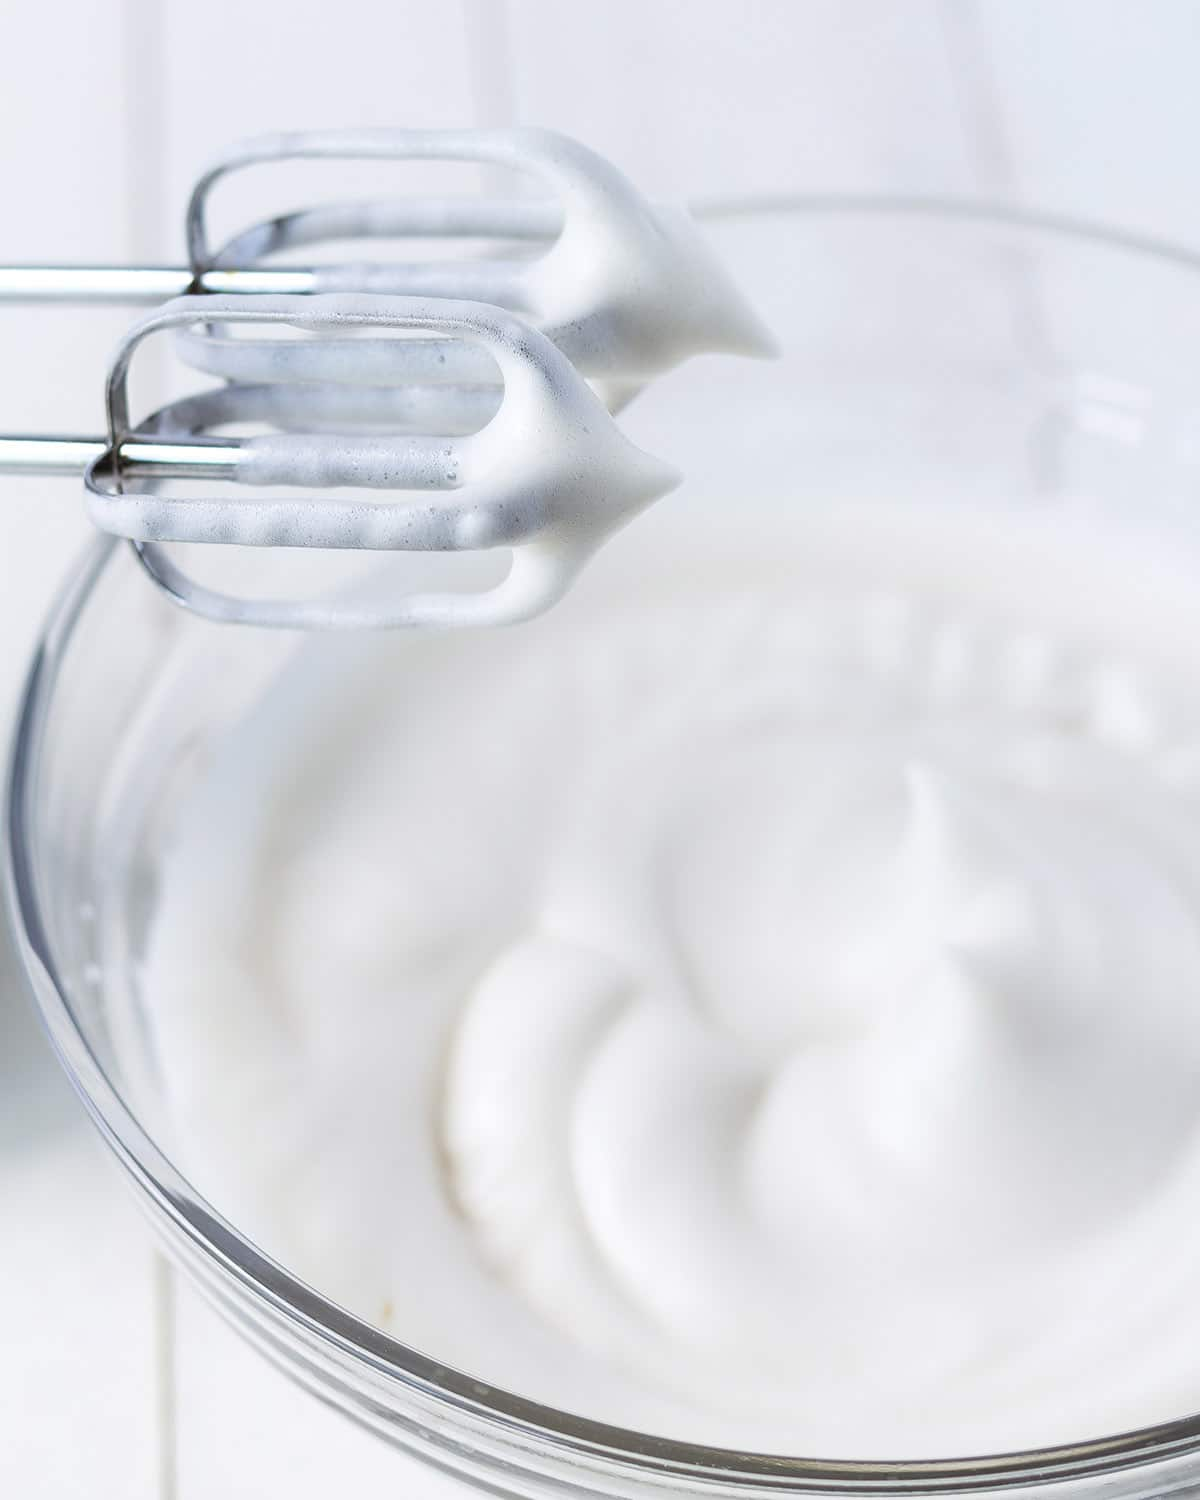 Image shows a hand mixer with a bowl of whipped aquafaba that has reached stiff peak stage.